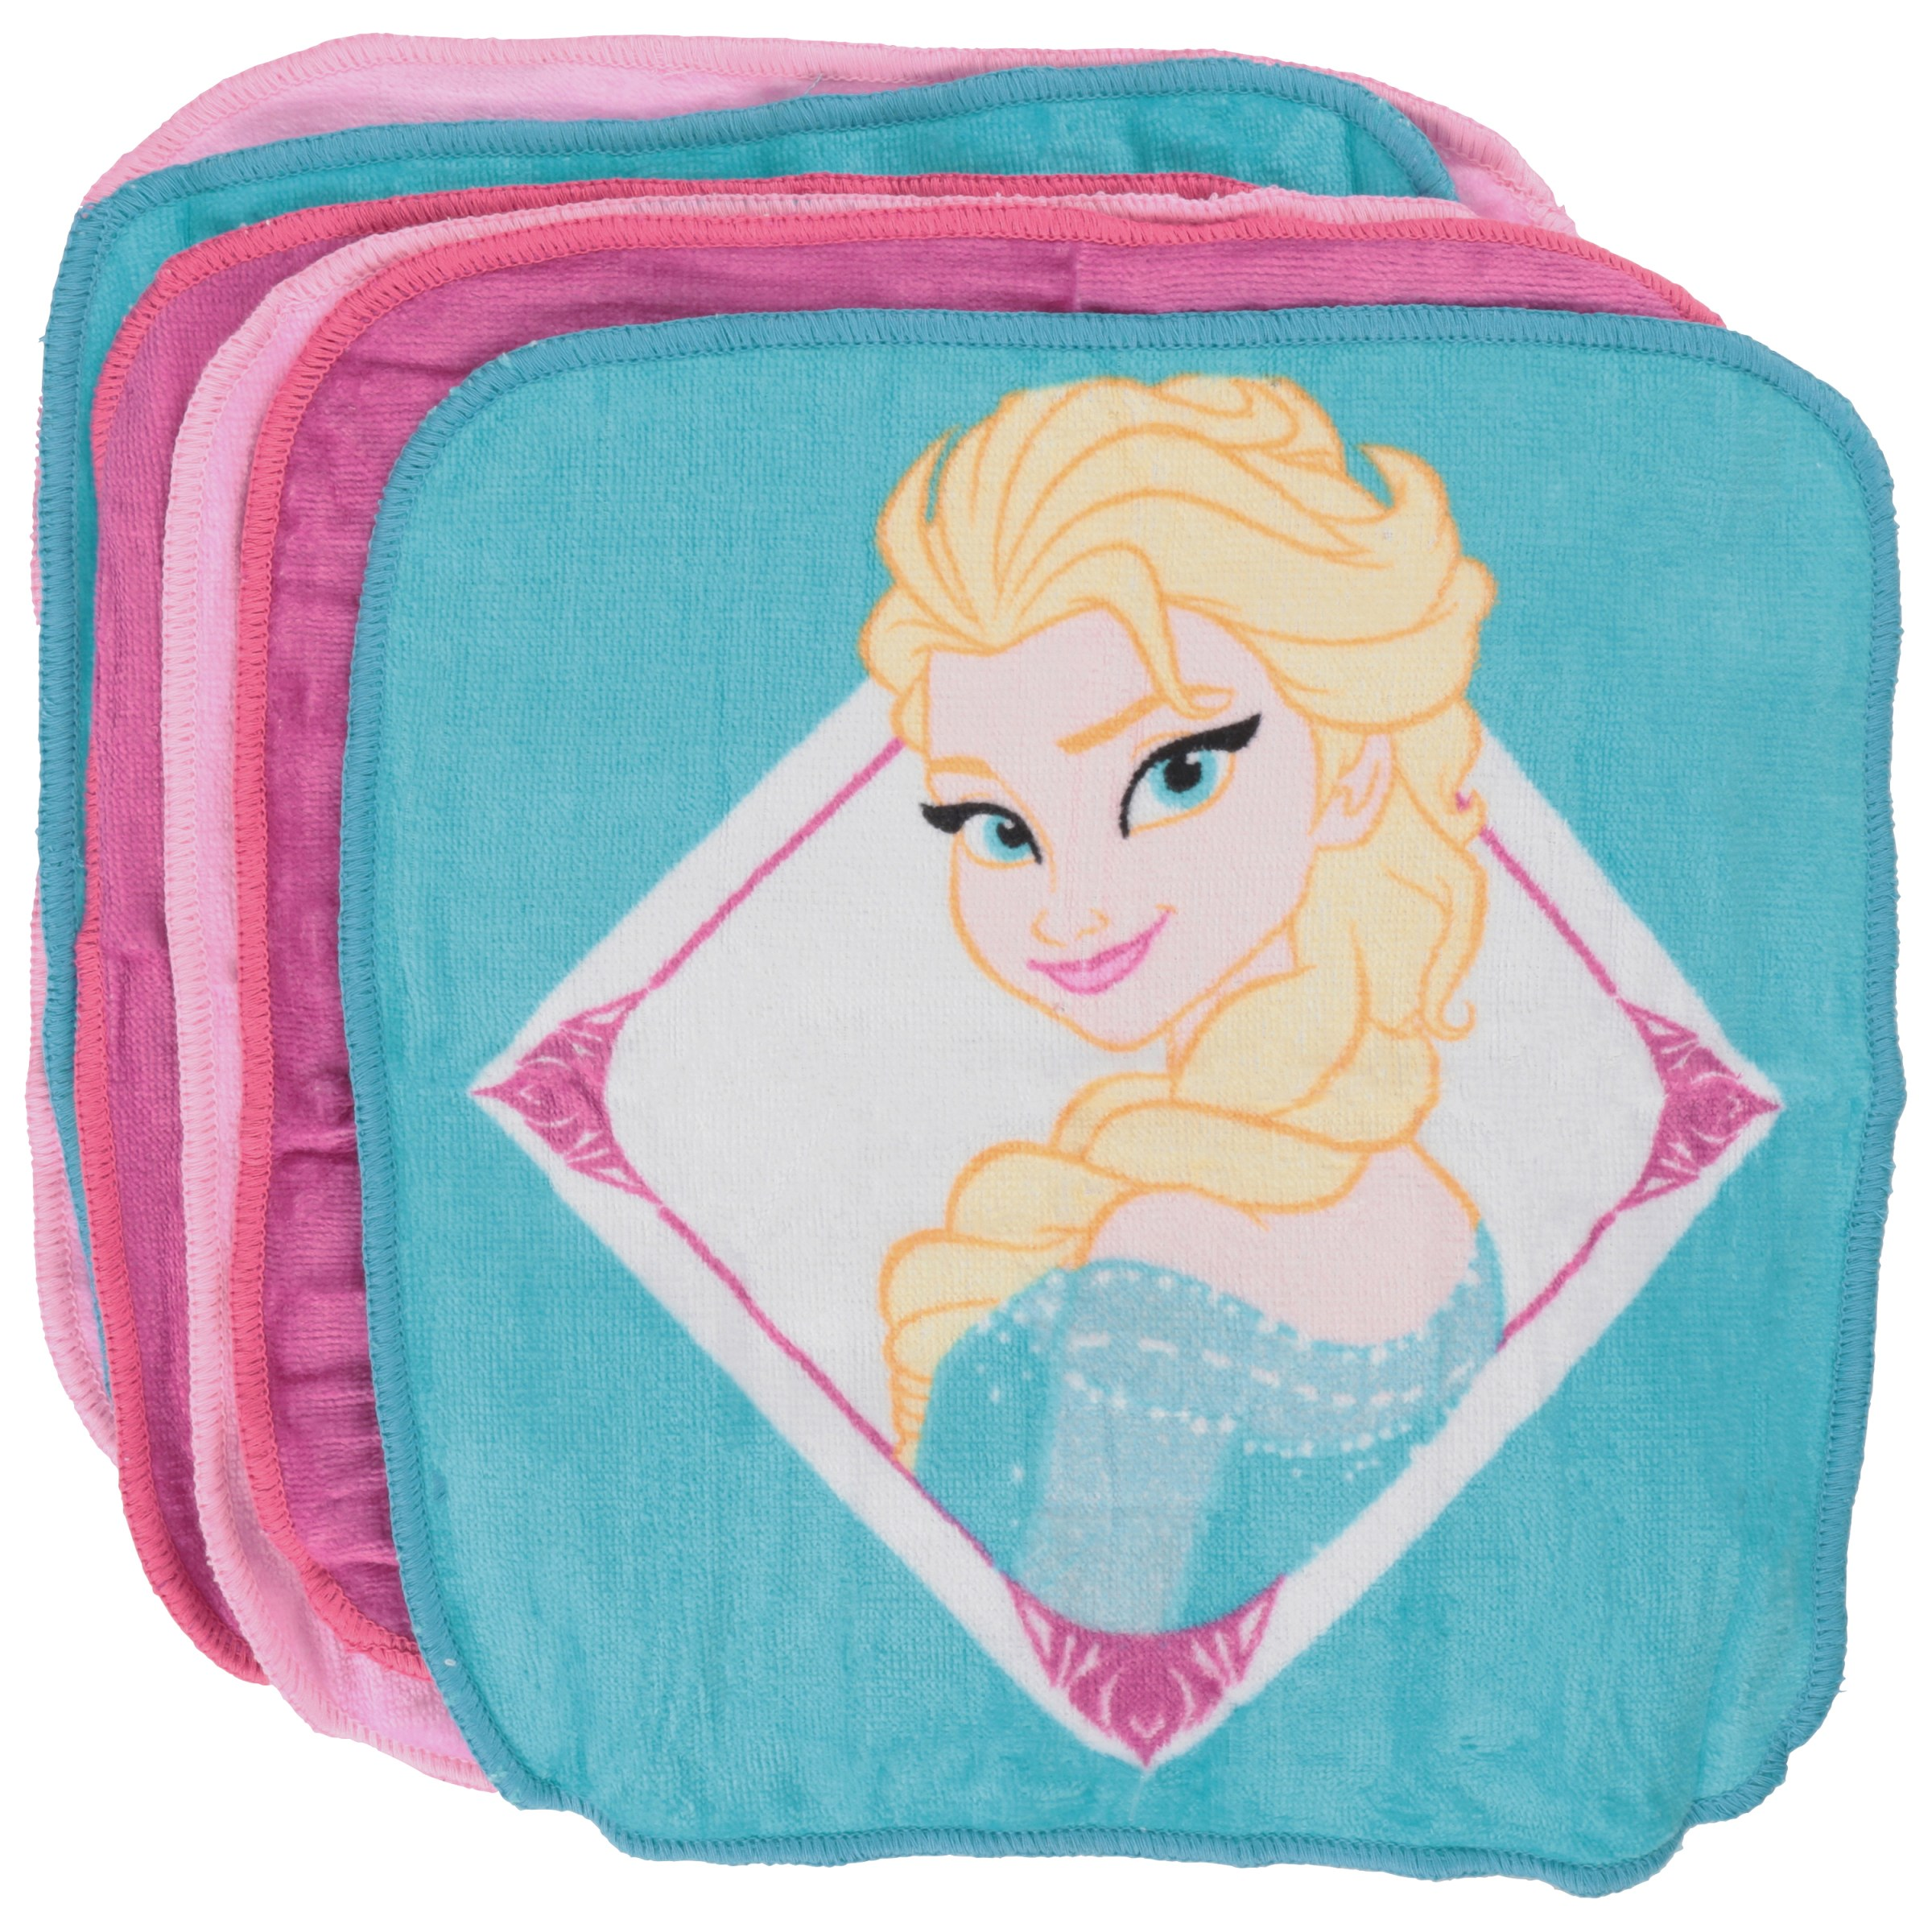 Disney Frozen Wash Cloth 6 pc Pack